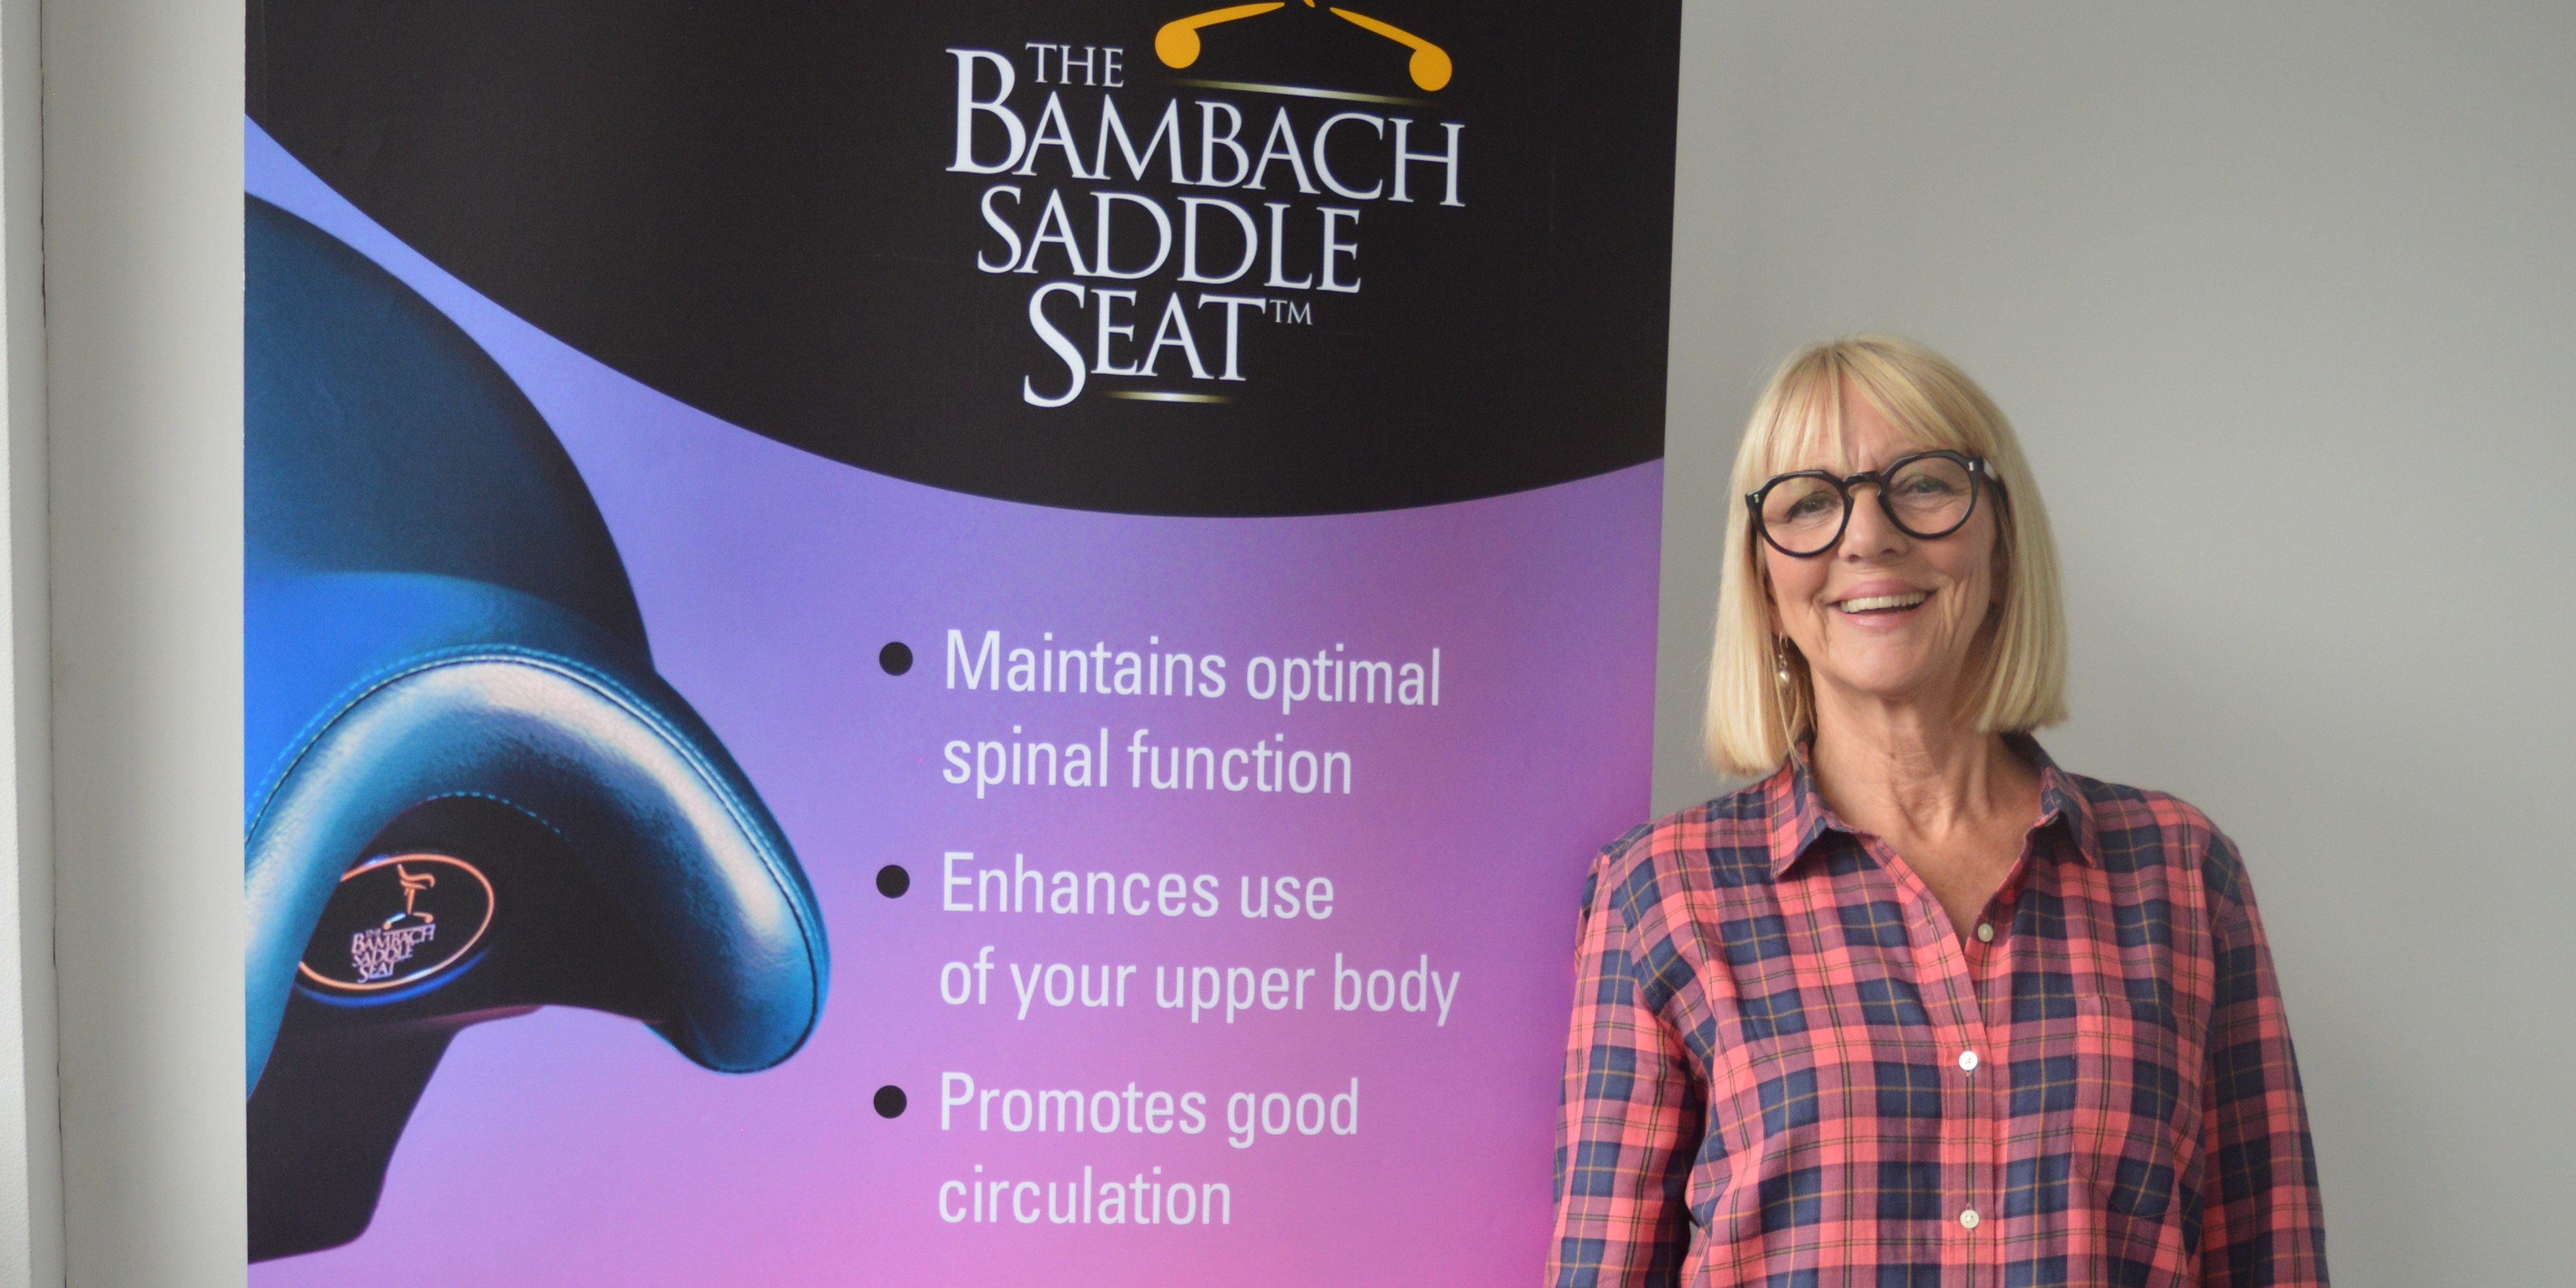 Bambach fits The Bill